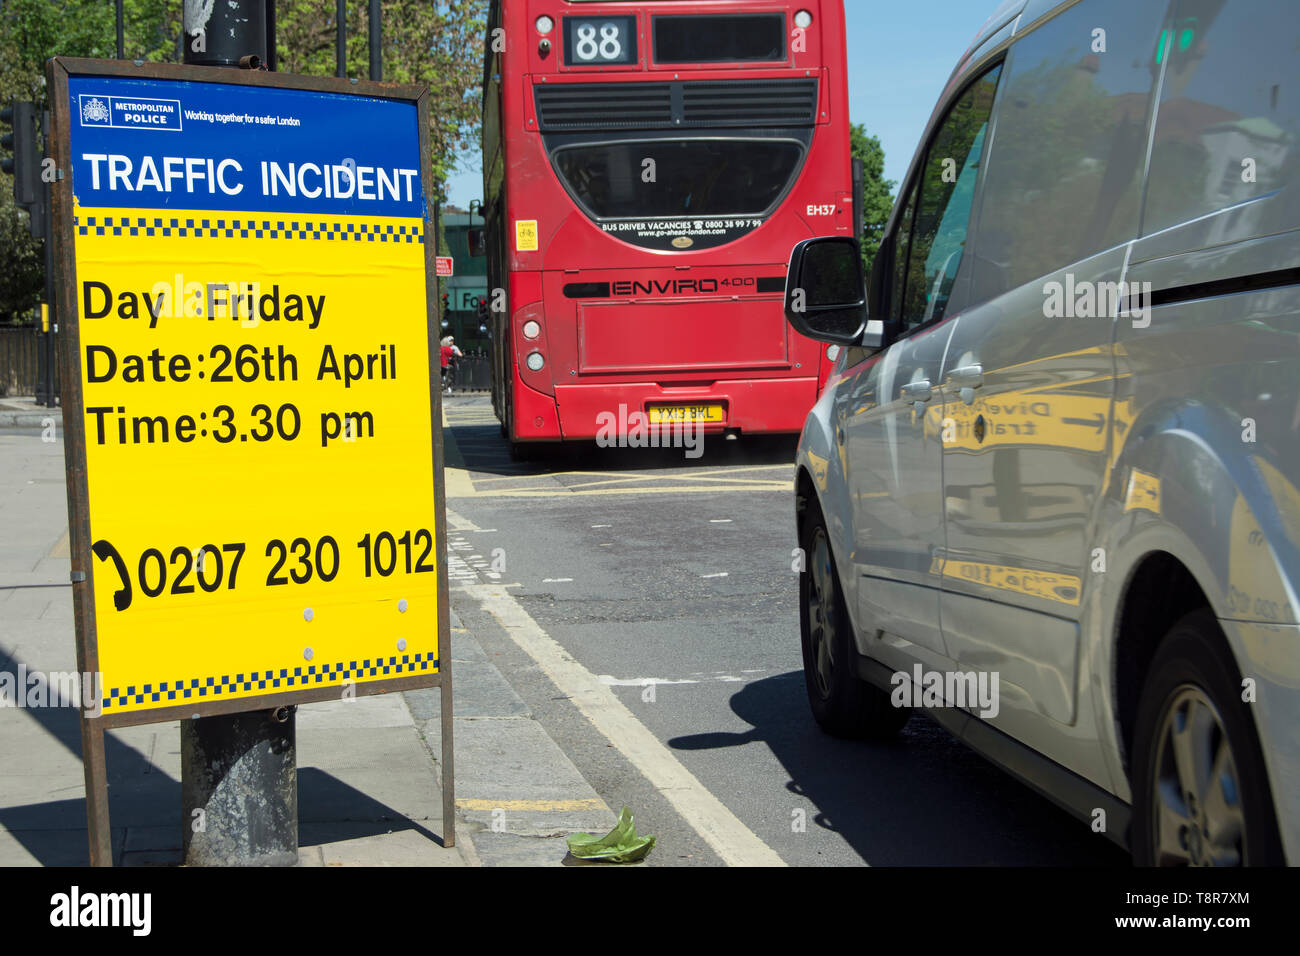 Road Traffic Incident Stock Photos & Road Traffic Incident